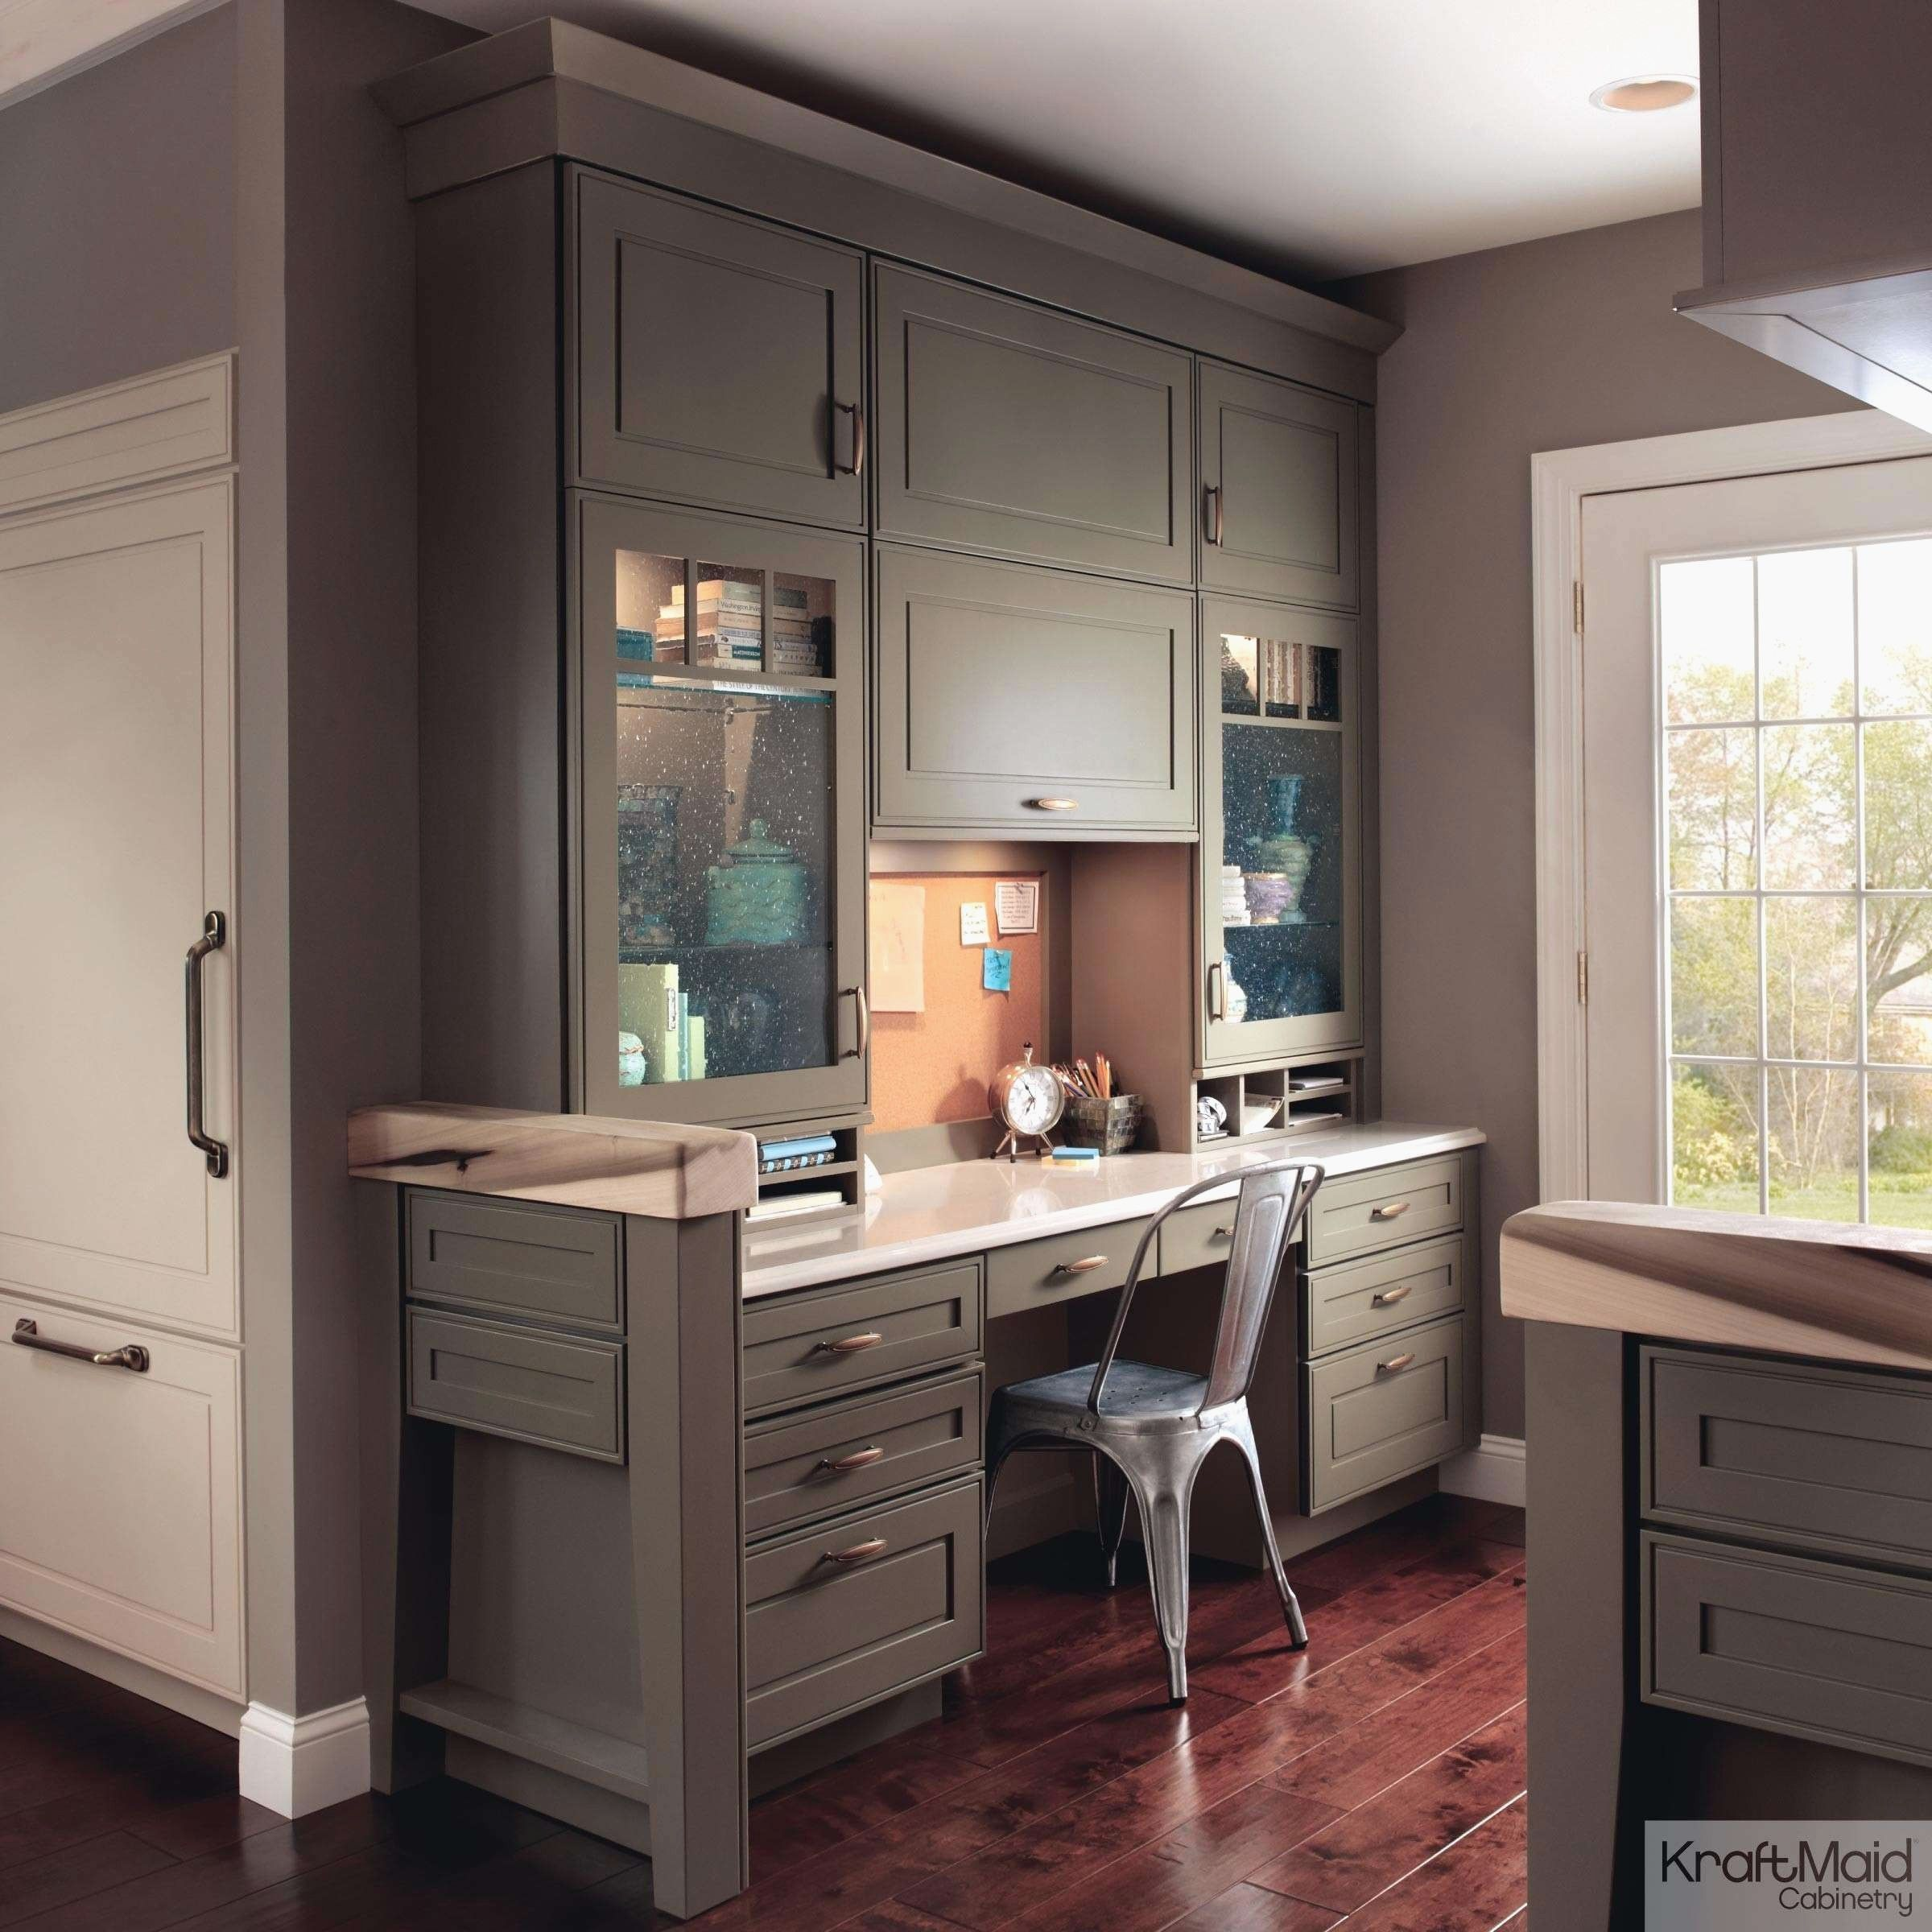 Awesome Kitchen Cabinet Design tool – The Most Awesome in ...